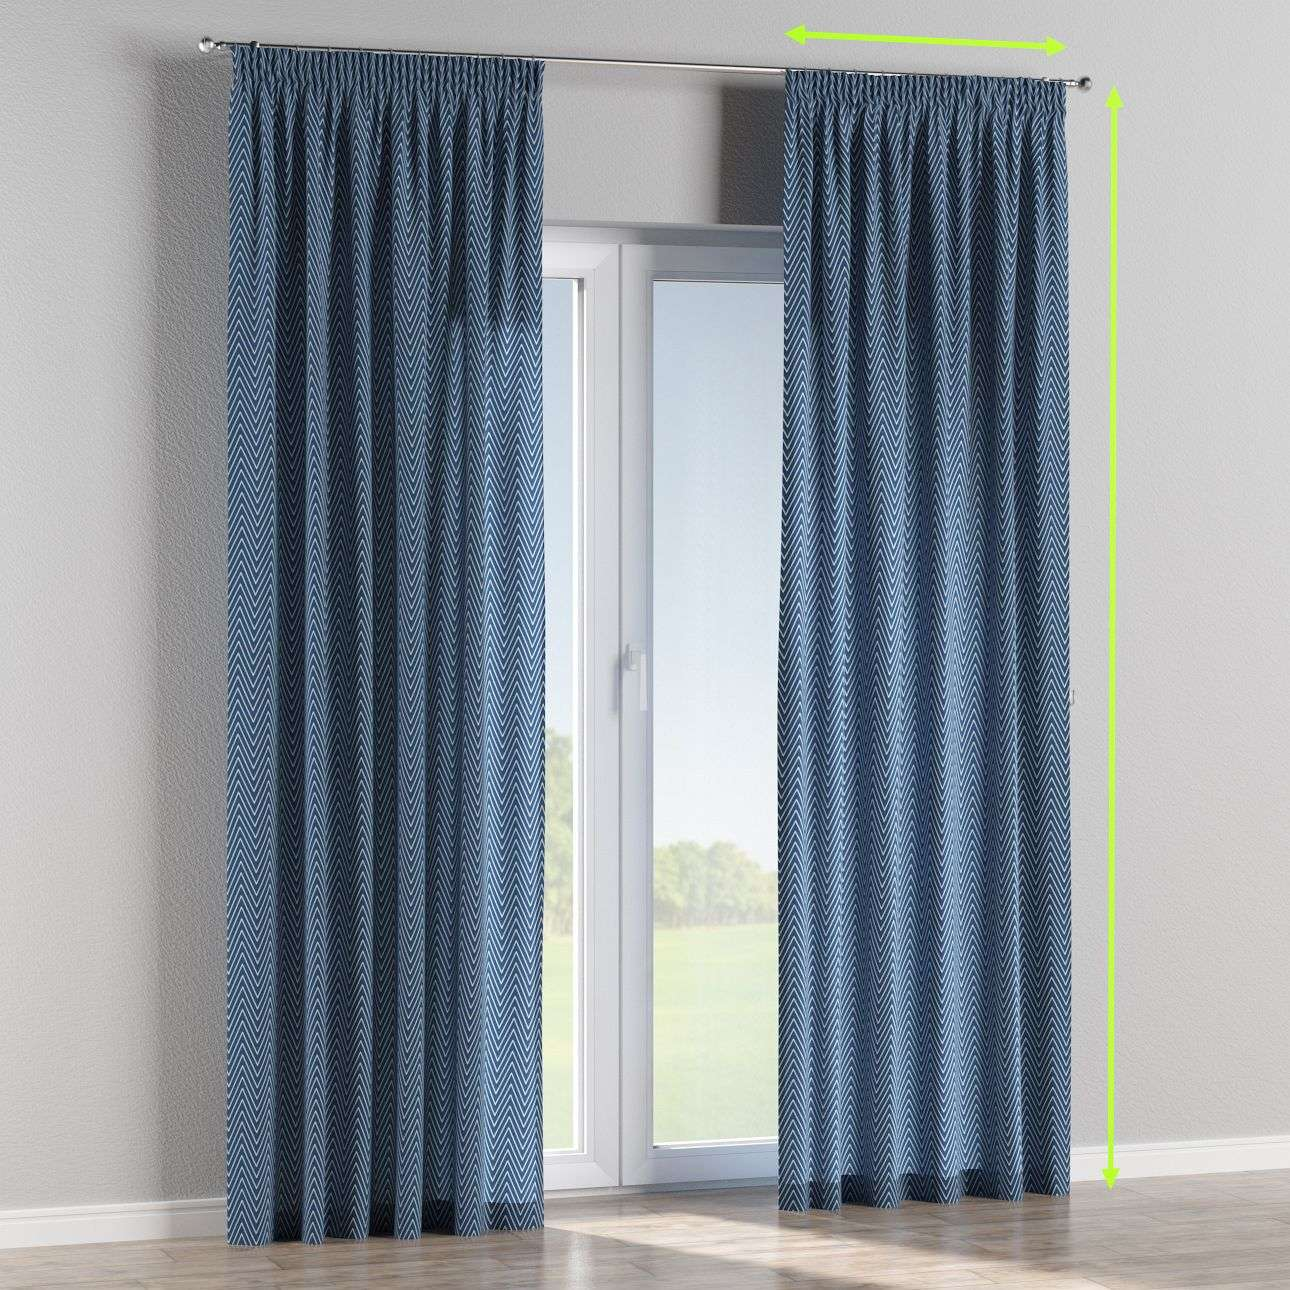 Pencil pleat lined curtains in collection Brooklyn, fabric: 137-88